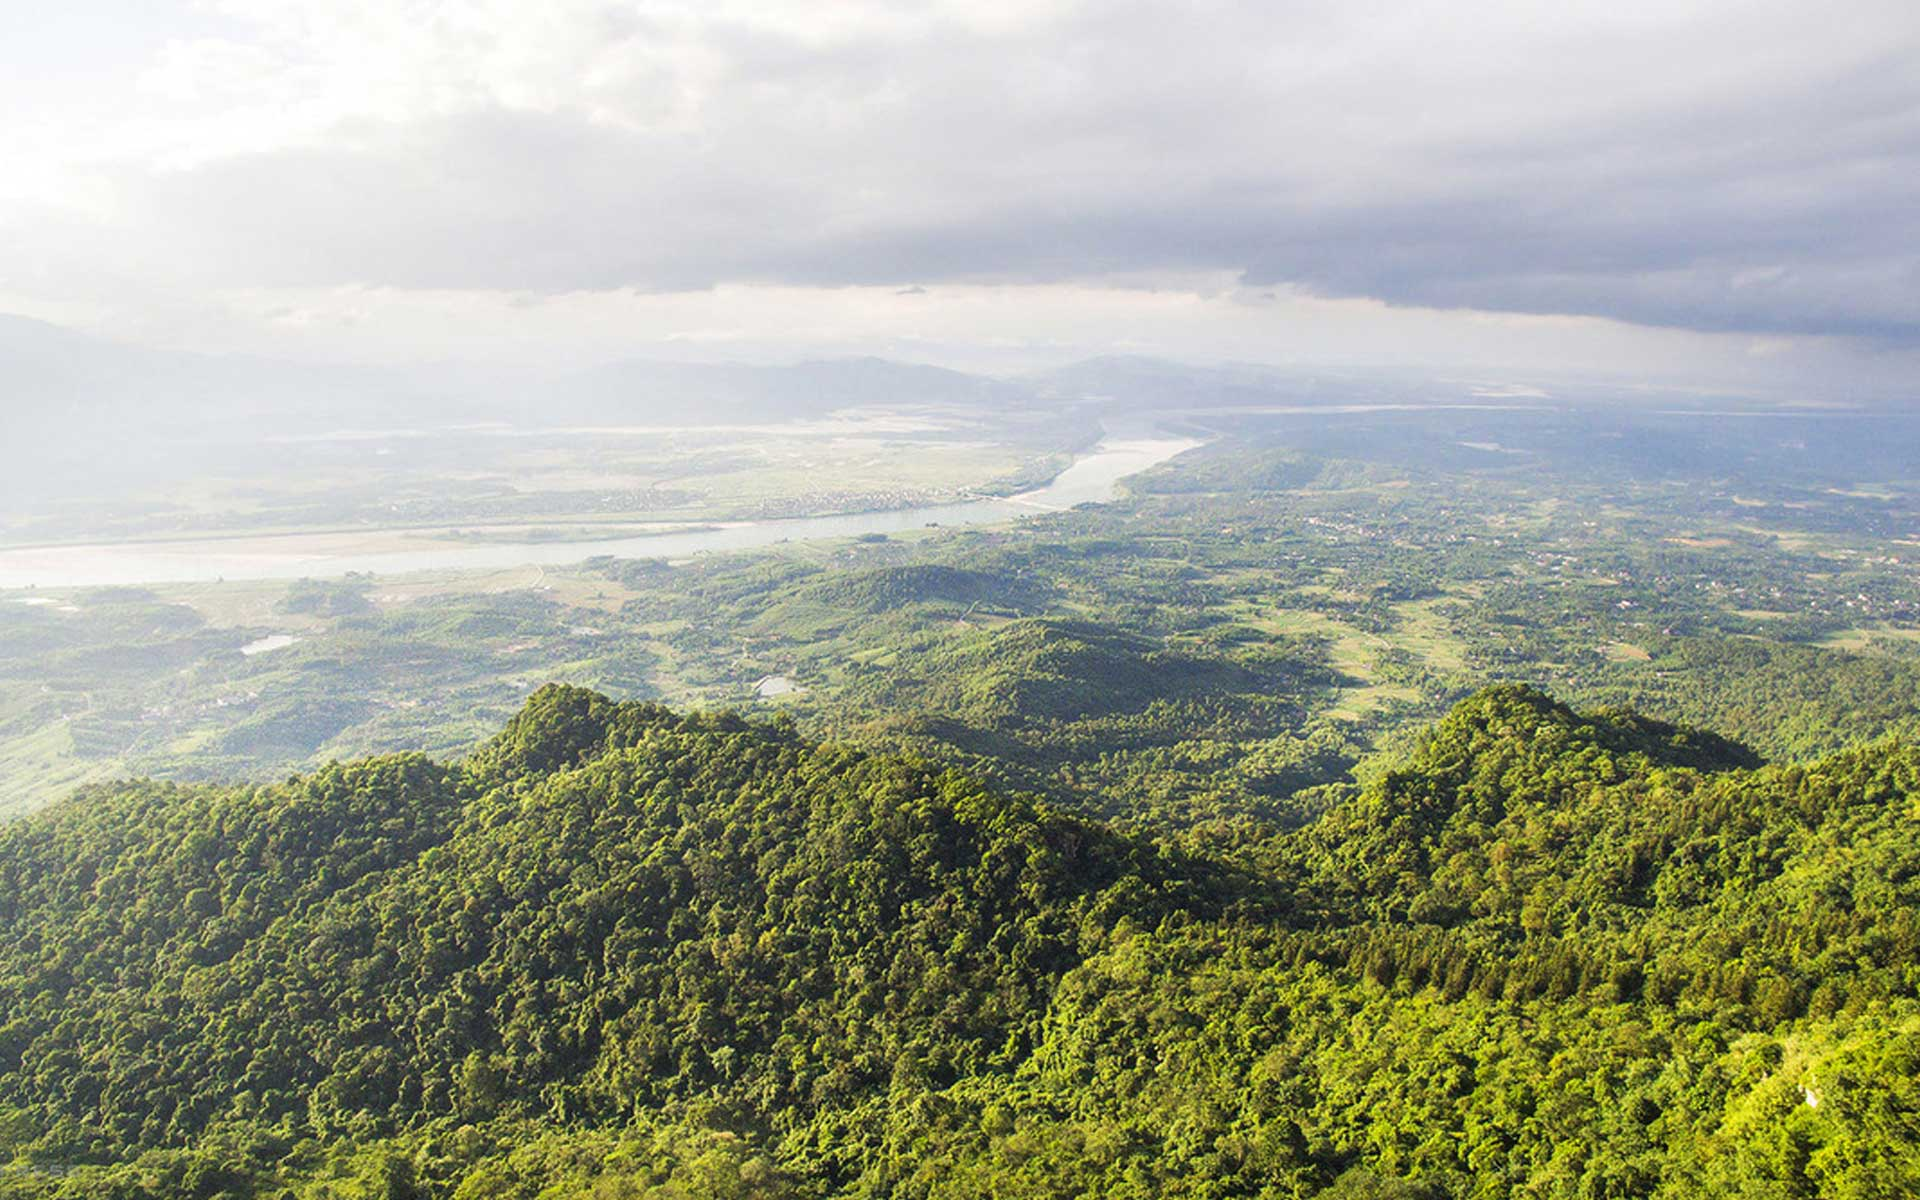 View of Ba Vi National Park and Da River from the above